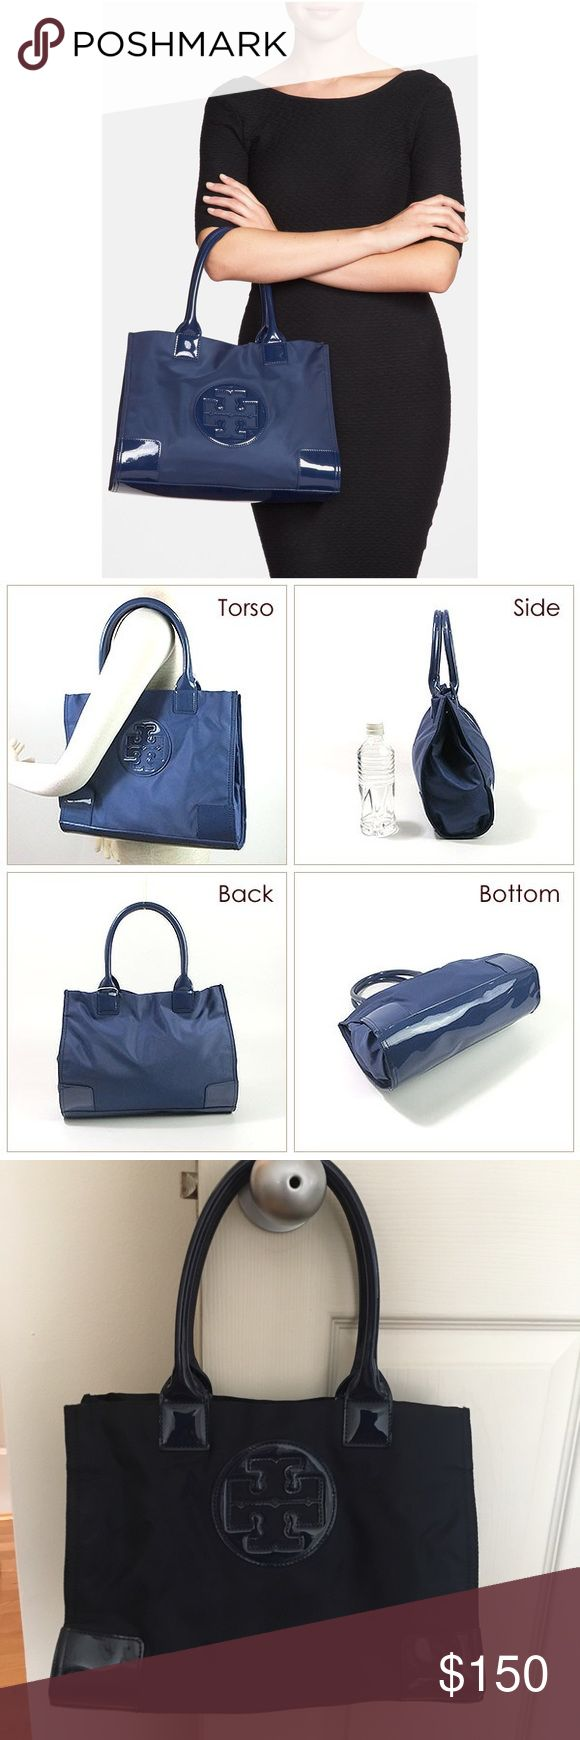 """Tory Burch Ella Mini Nylon Tote Bag Nylon material with *some signs of use* Magnetic snap closure, 2 gusset snaps Tubular patent leather handles with 6.5"""" (16.5 cm) drop 1 interior zipper pocket, 2 open pockets Height: 10"""" (25.1 cm) Length: 13.5"""" (33.9 cm) Depth: 4.5"""" (11.3 cm) Tory Burch Bags Totes"""